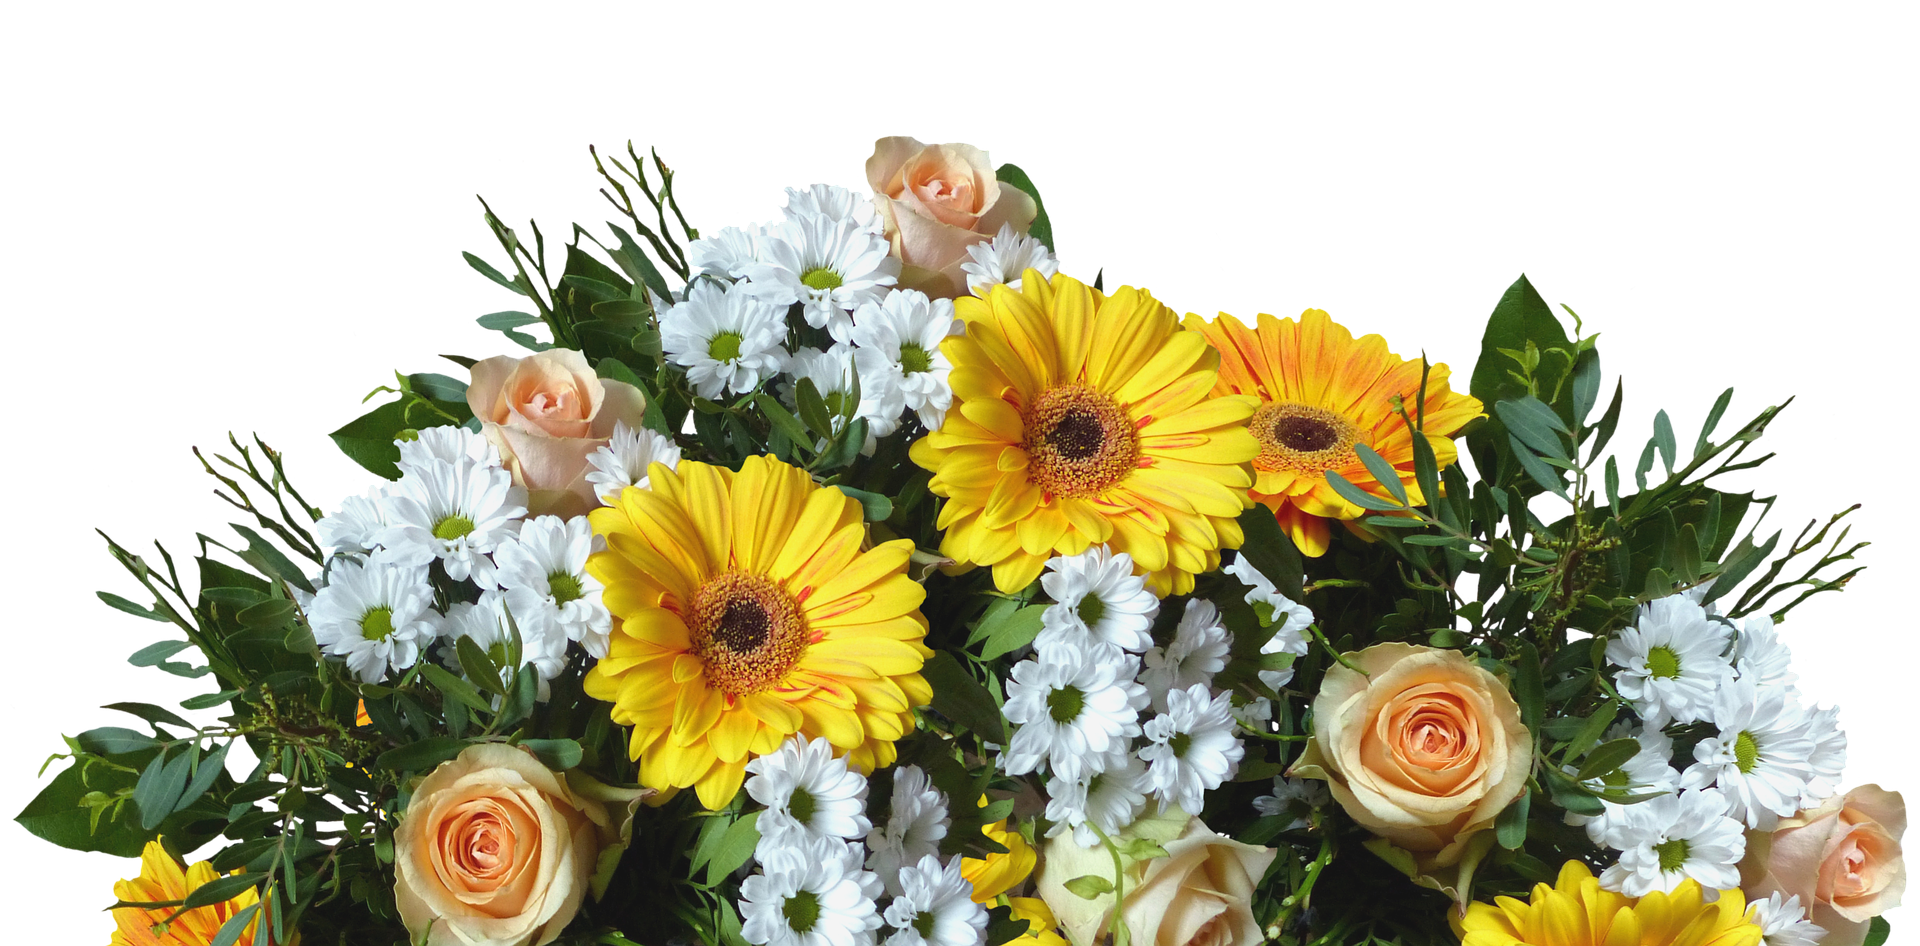 Png Of Funeral Wreath Amp Free Of Funeral Wreath Png